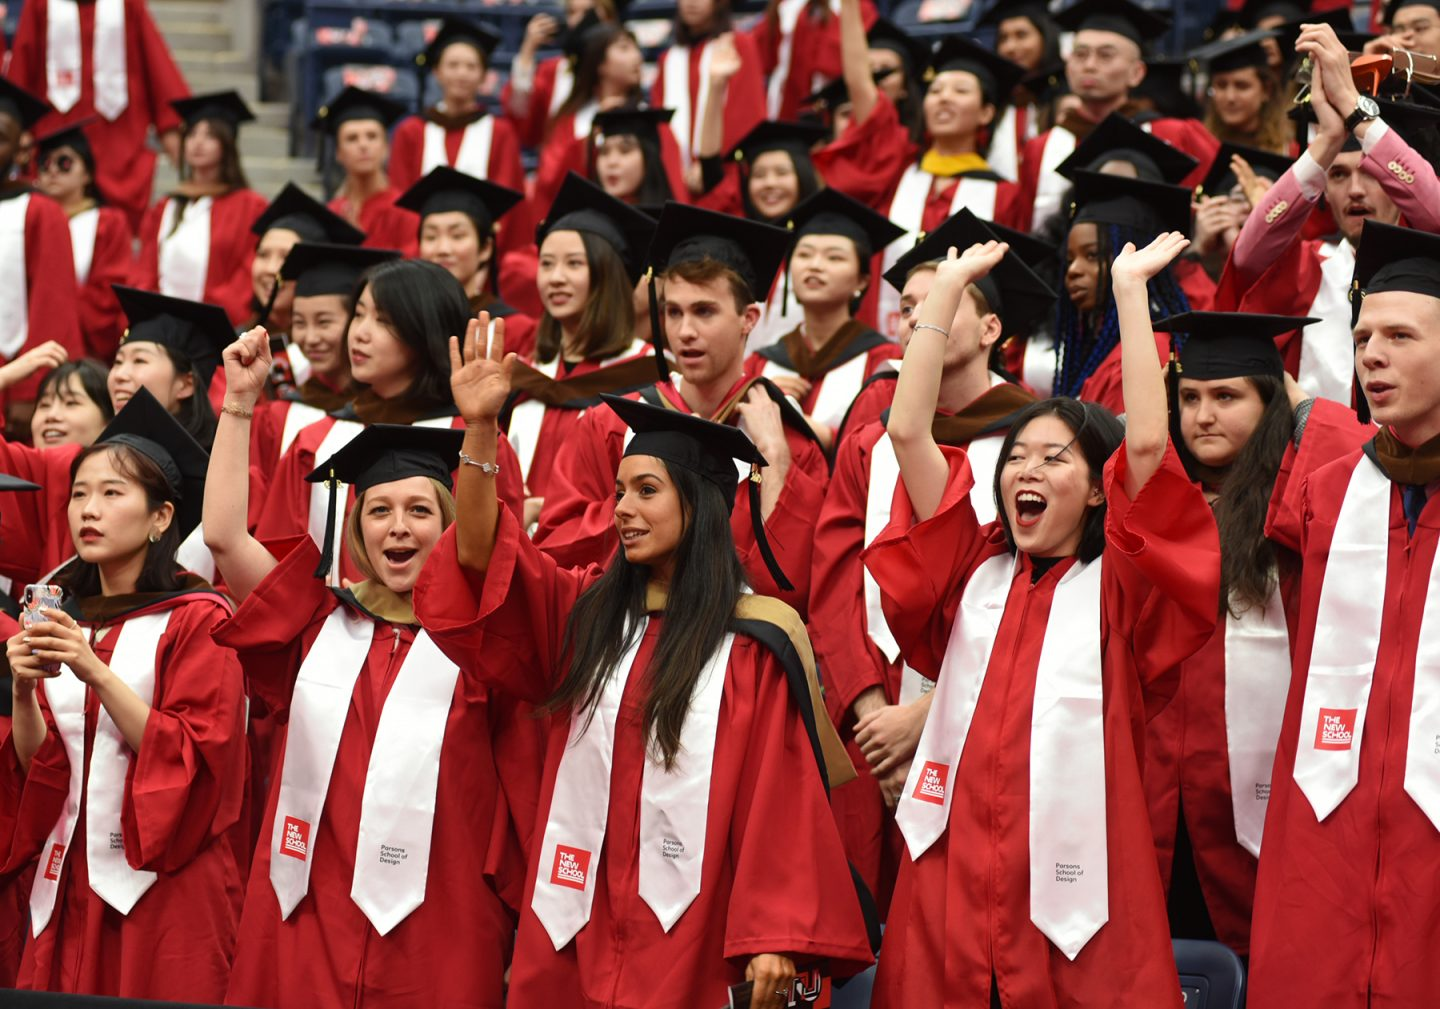 83rd Commencement: A Joyous Celebration of Graduates and The New